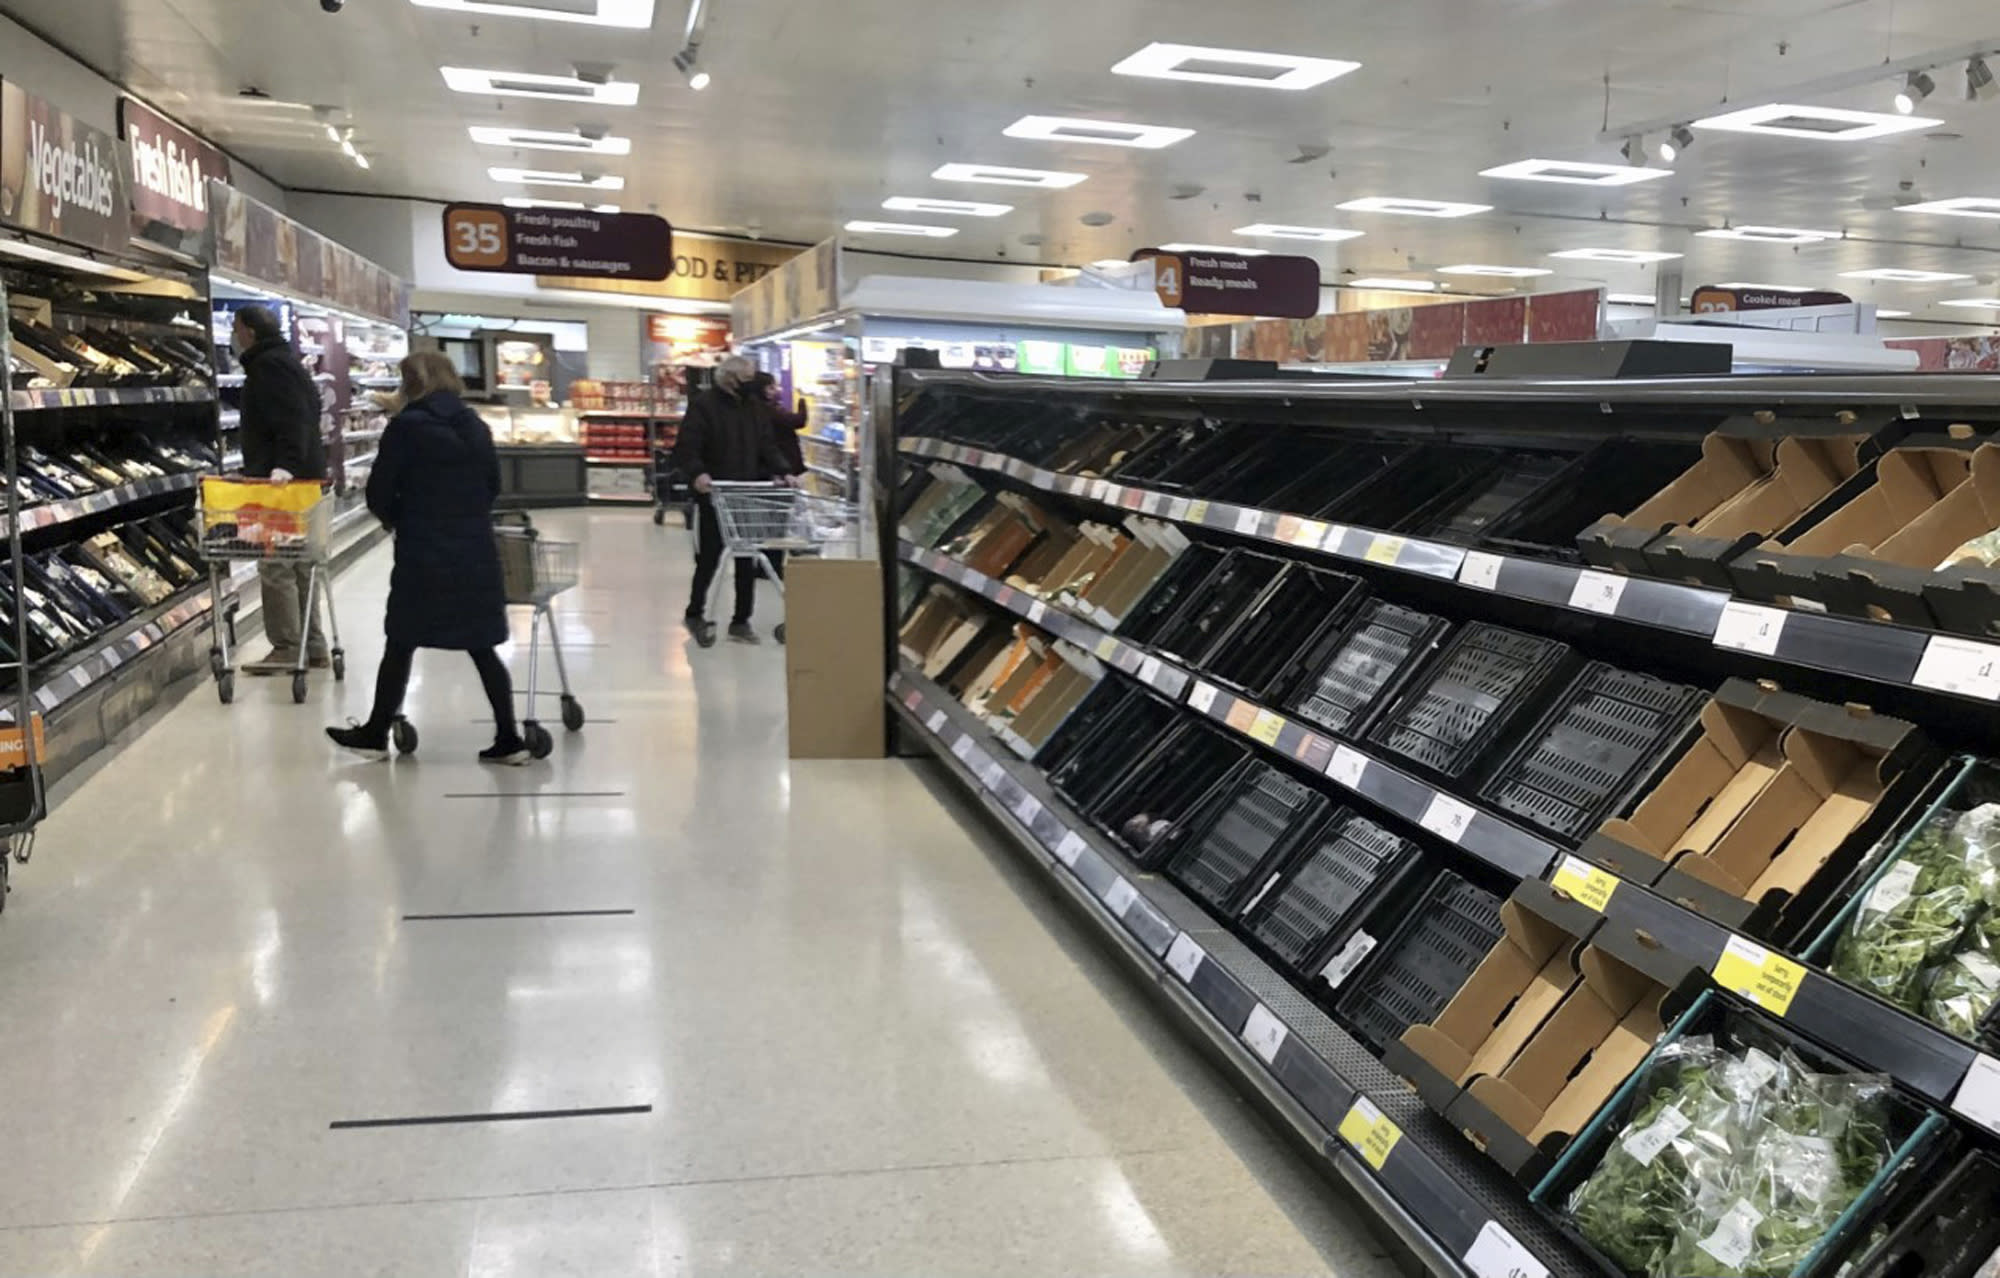 NIreland stores see empty shelves as Brexit trade rules bite